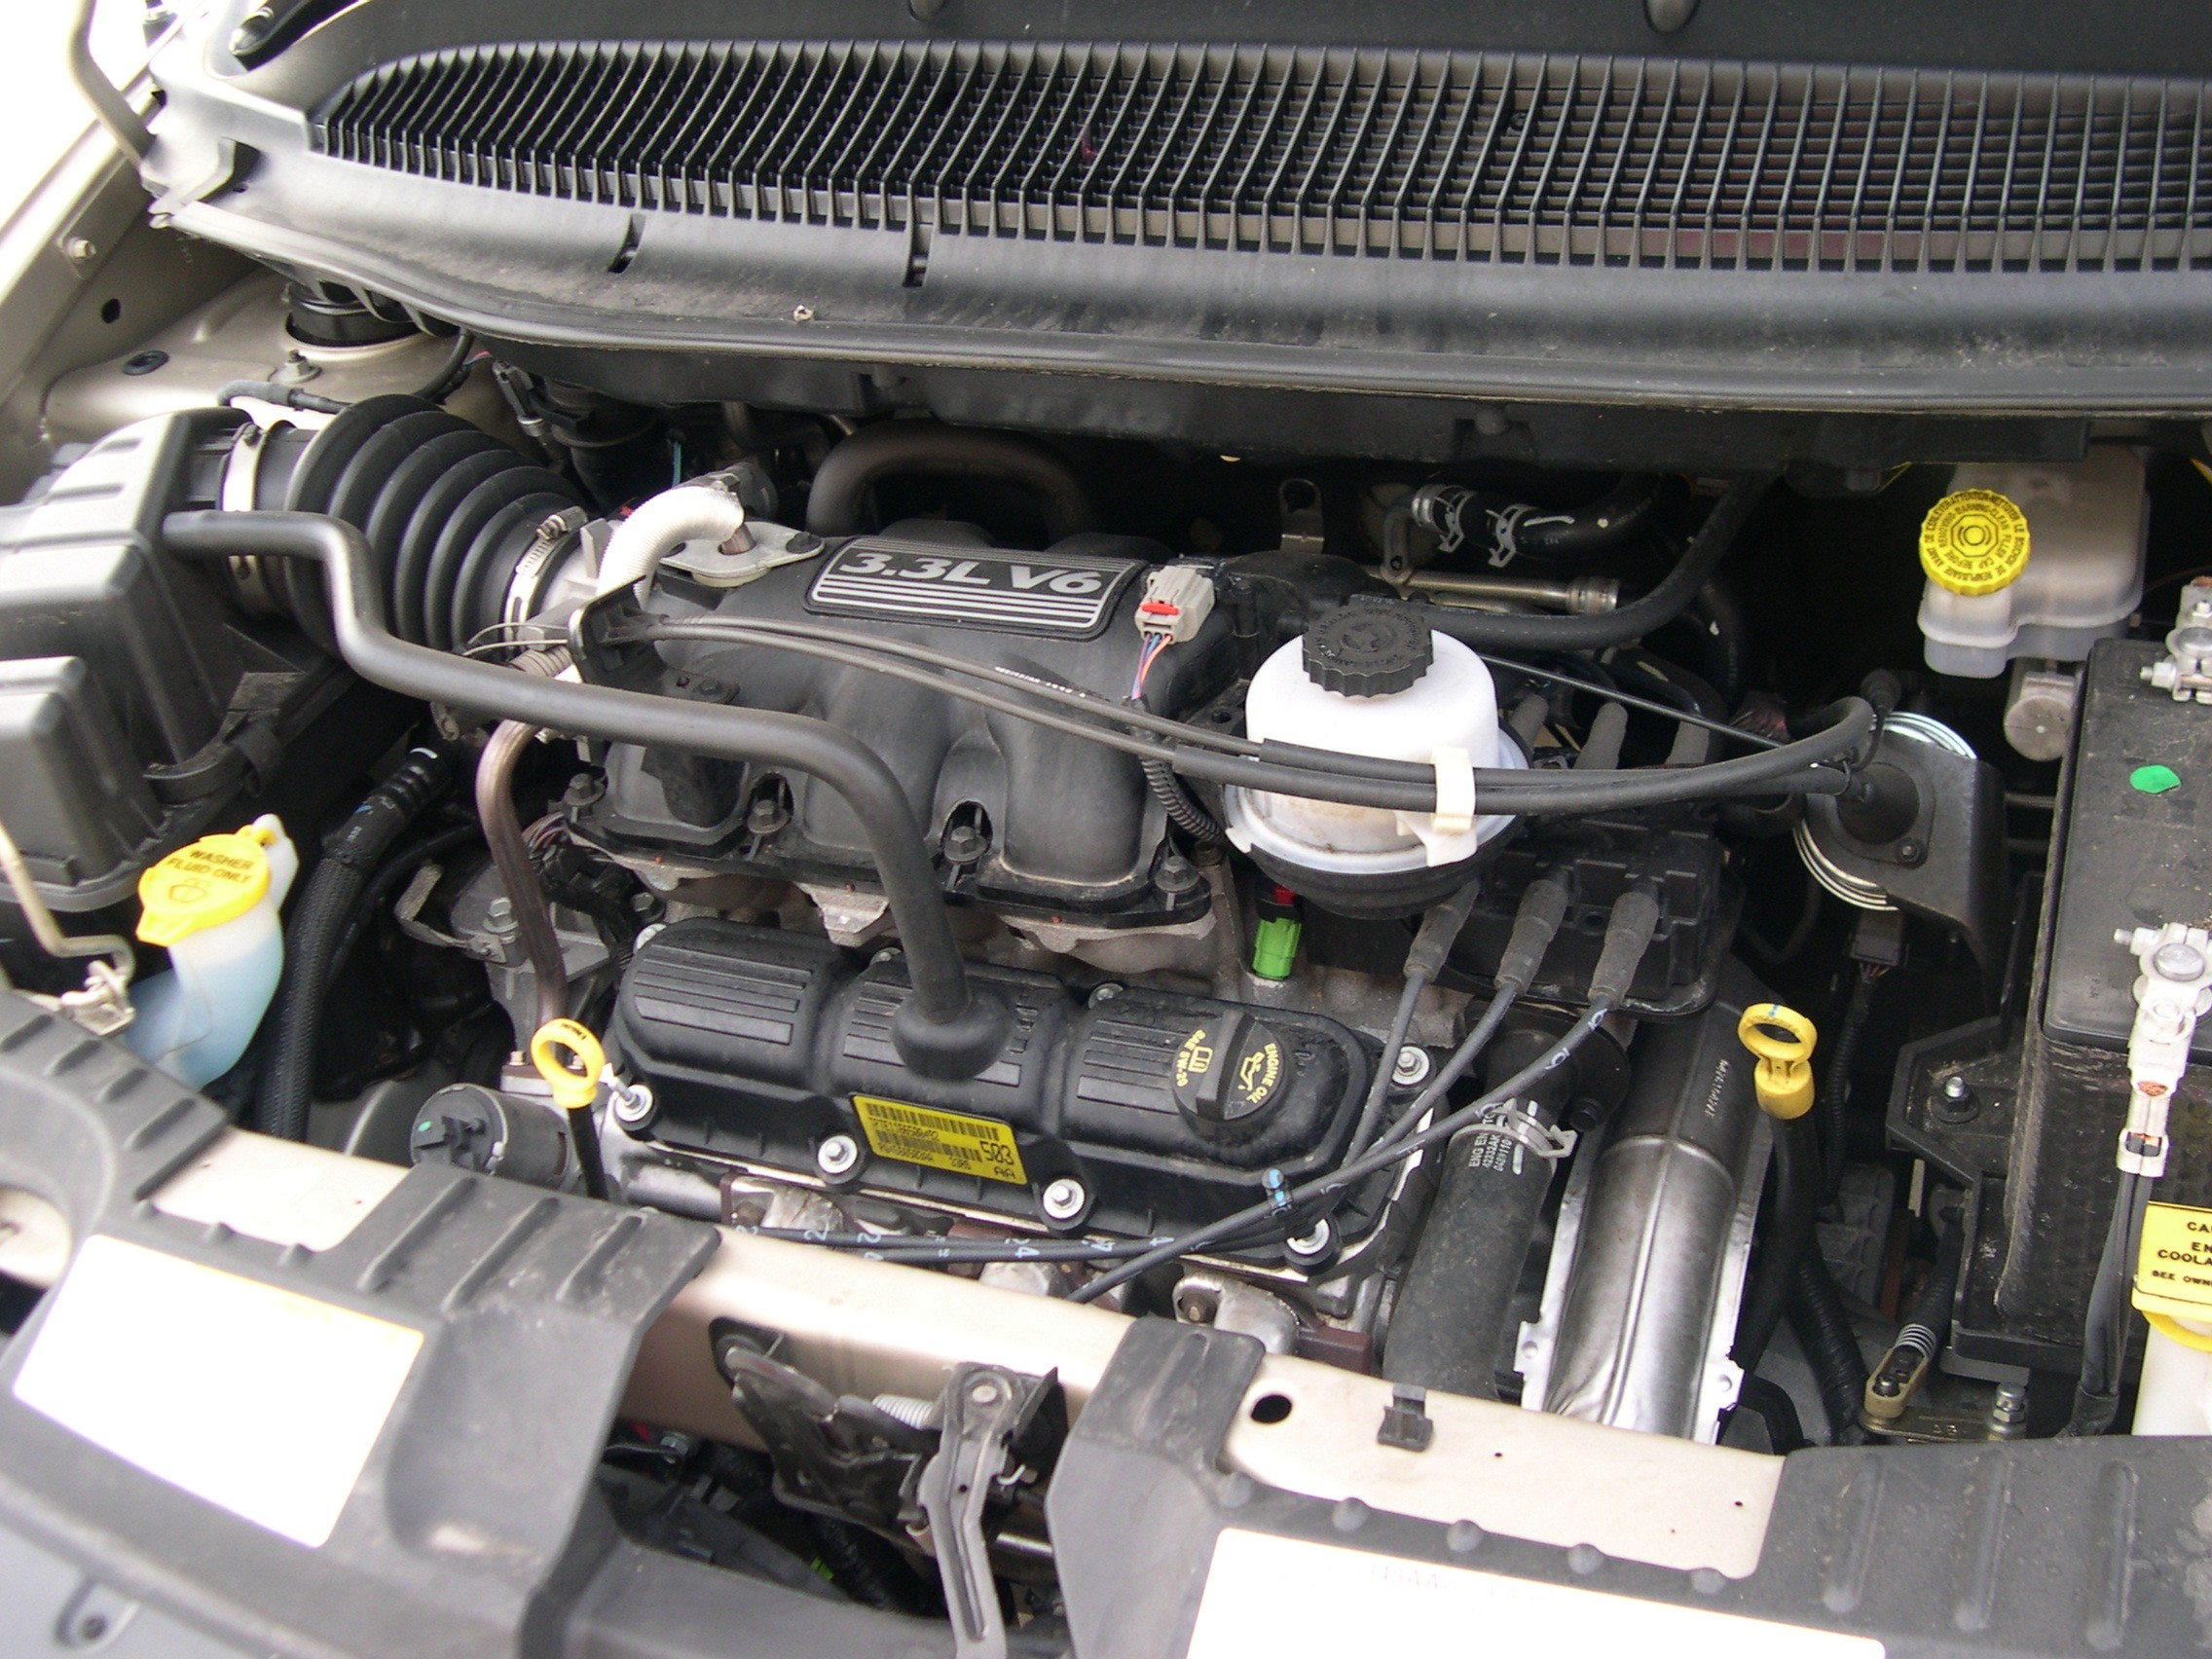 2005 Chrysler town and Country Engine Diagram File 2005 Chrysler town and Country Lx 3 3 Engine Jpg Wikimedia Of 2005 Chrysler town and Country Engine Diagram